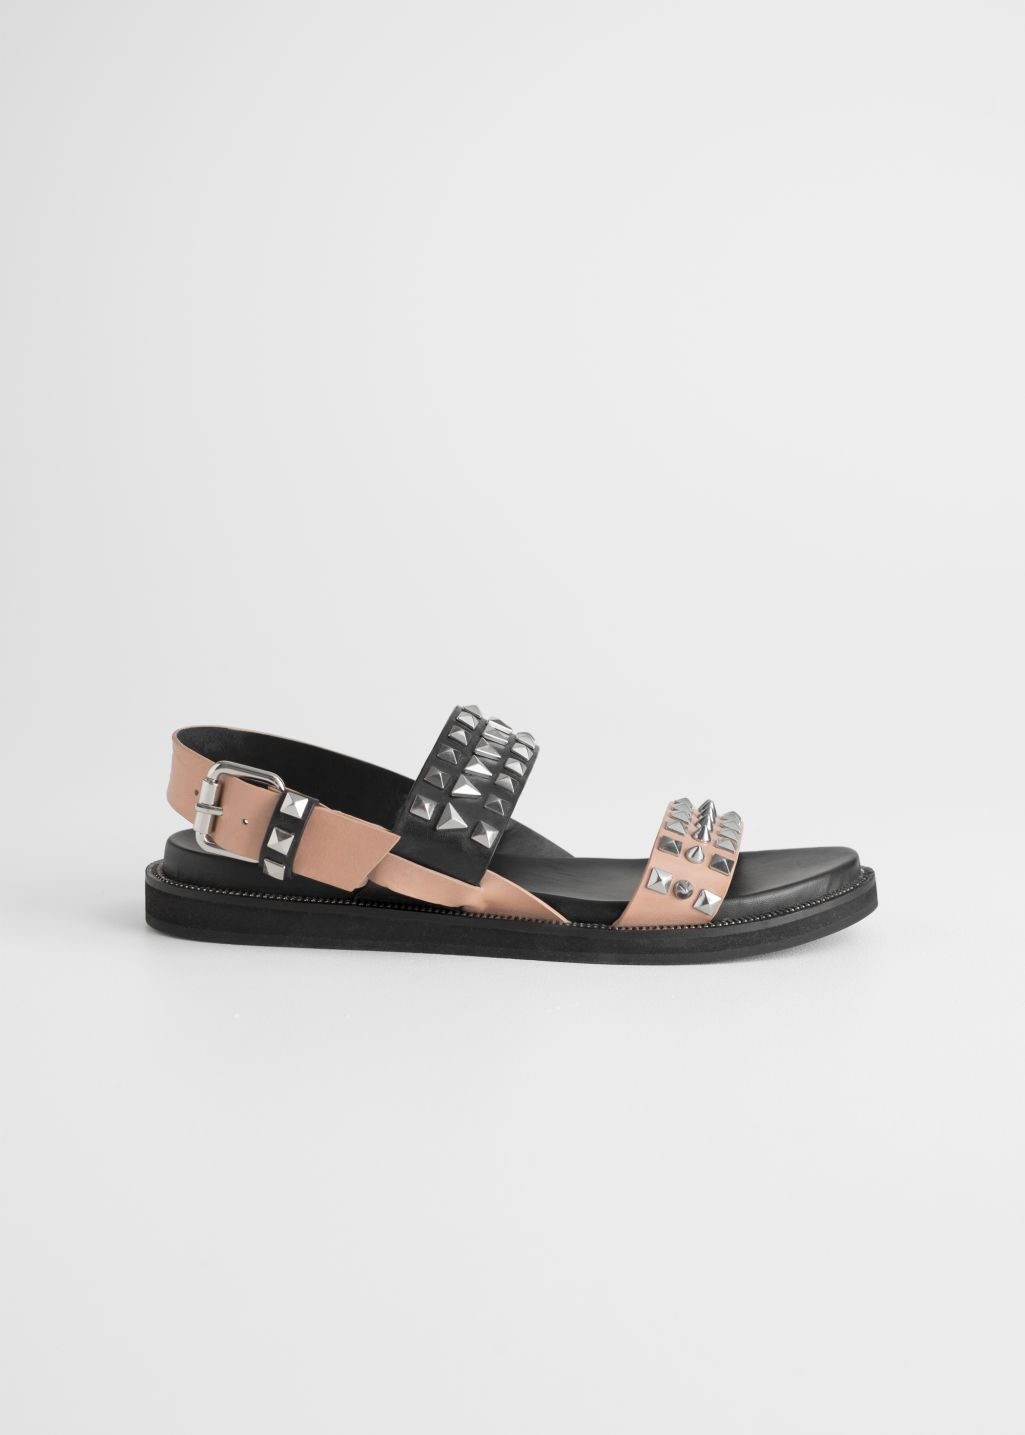 4e56dc882dec Two Toned Studded Sandals